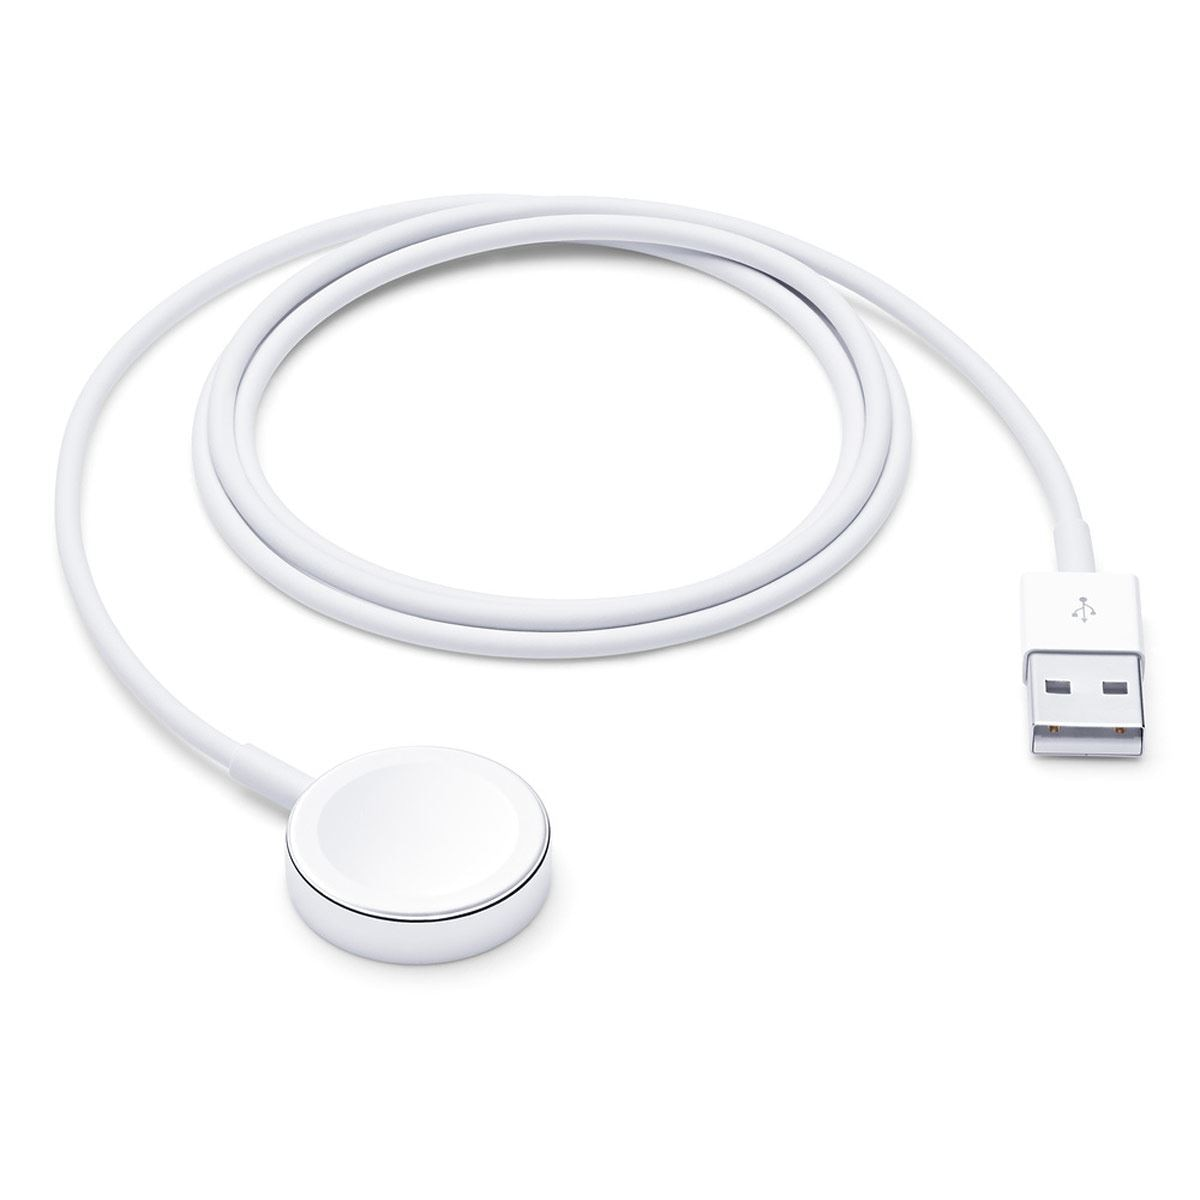 Cable de Carga Magnética 1M para Apple Watch